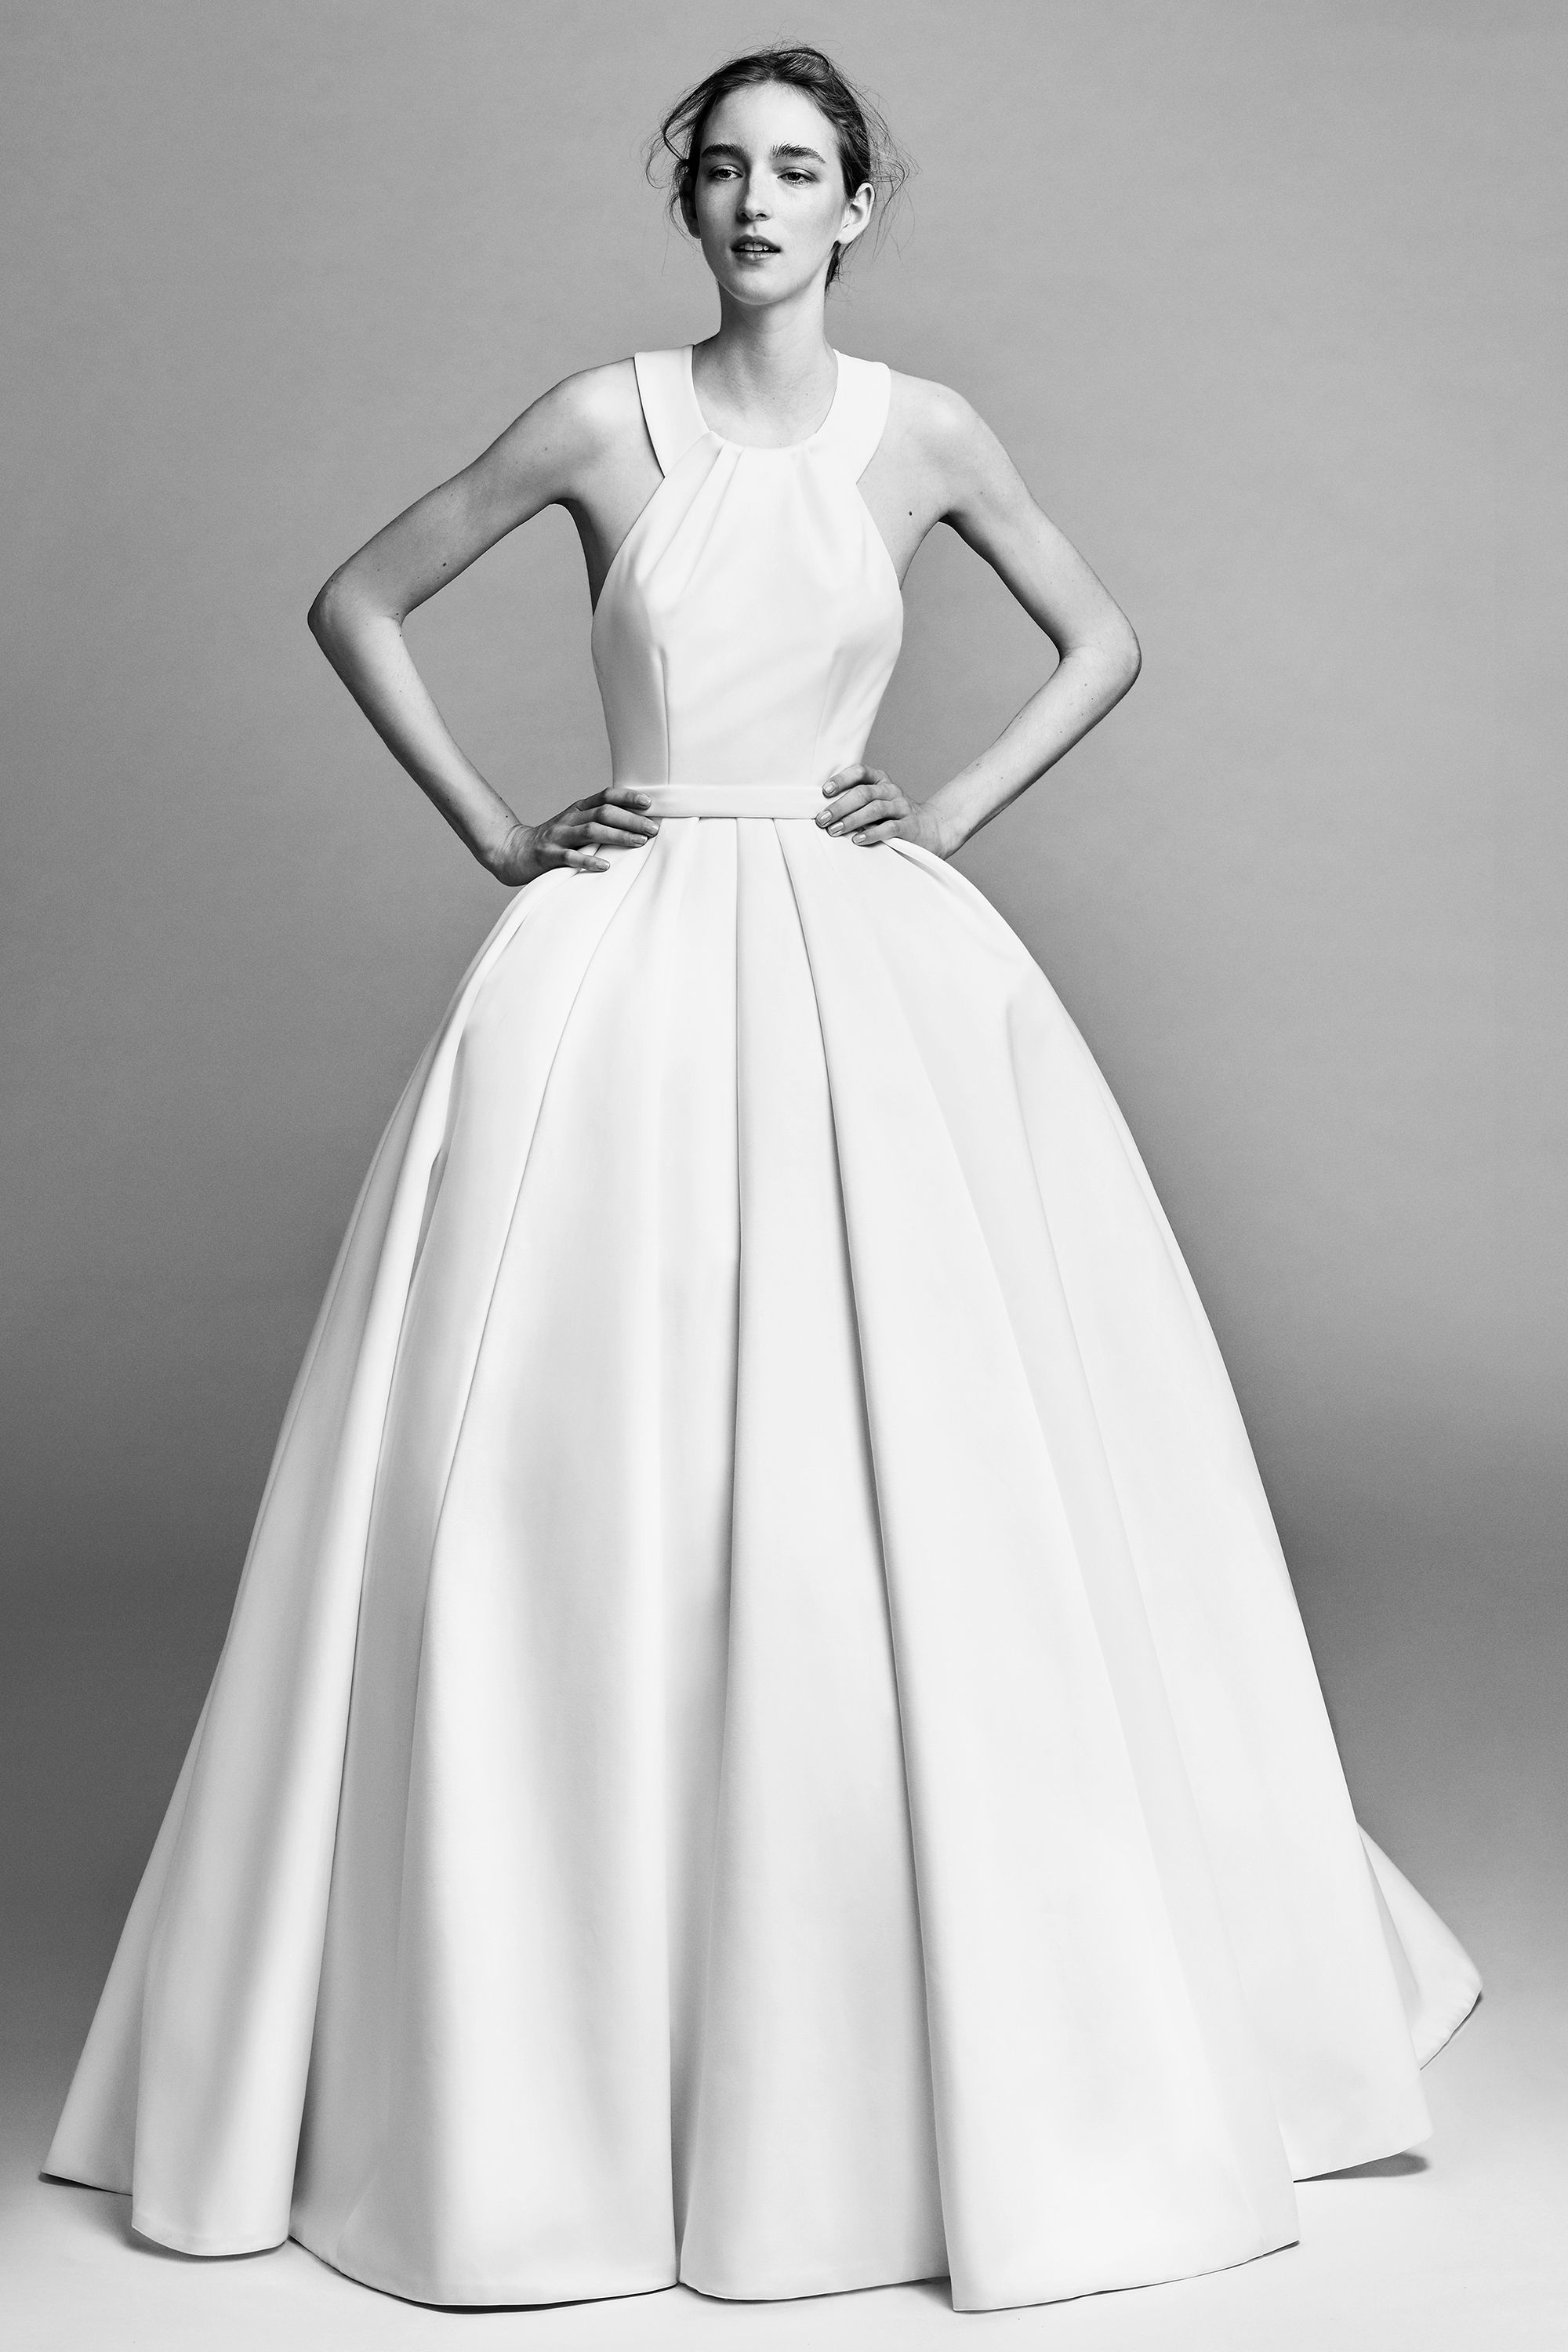 Viktor Rolf Debuts a Full Bridal Collection for Fall 2019 forecast